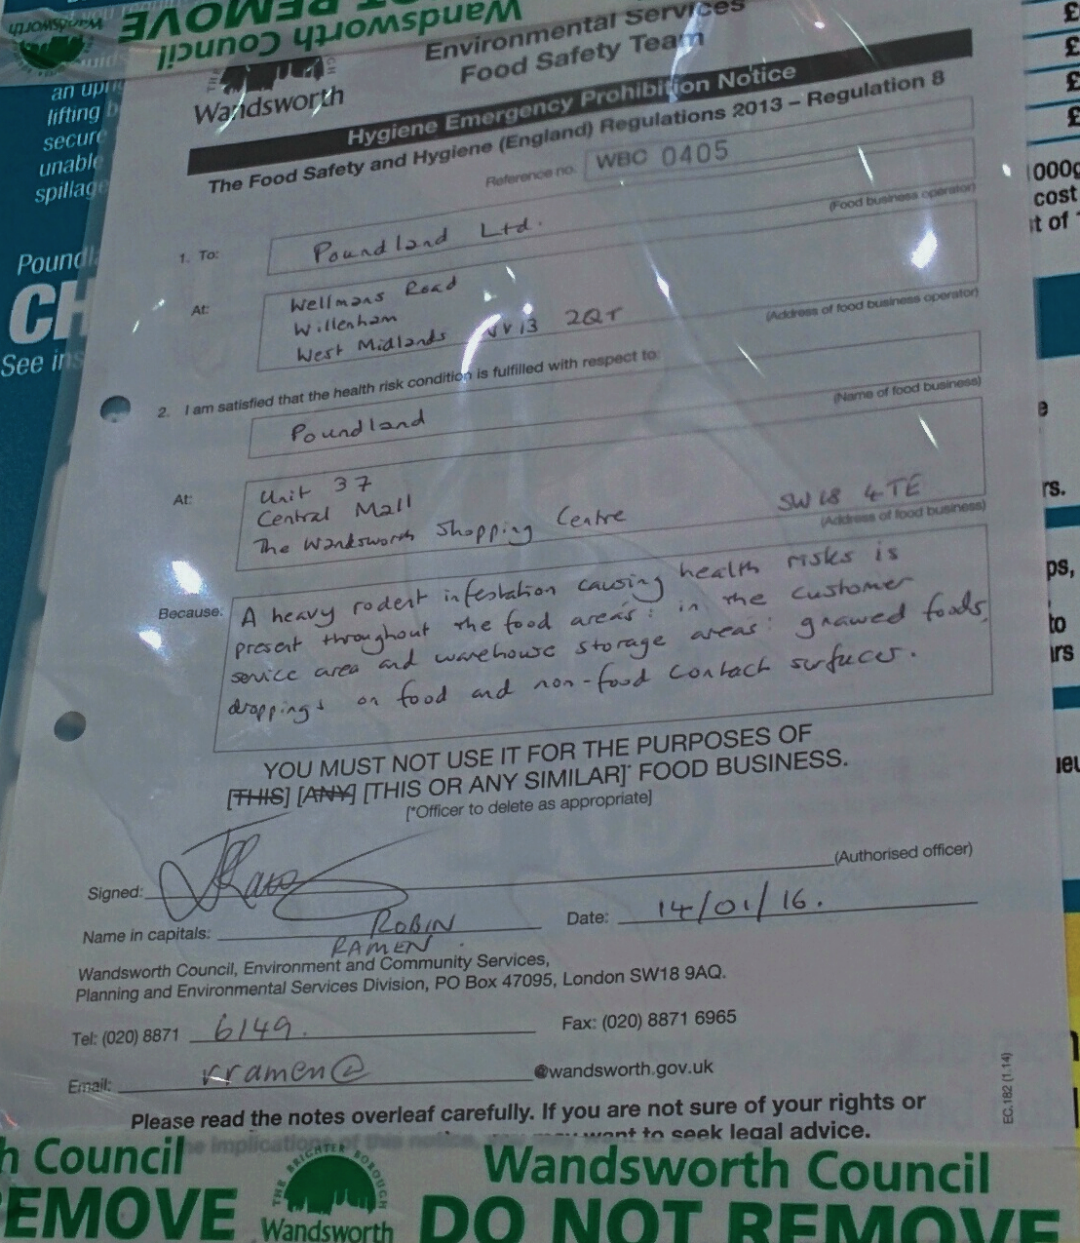 An hygiene emergency notice served by Wandsworth Council to Poundland in Wandsworth Southside shopping centre dated 14 Janaury 2016. Photographed 15 January 2016.